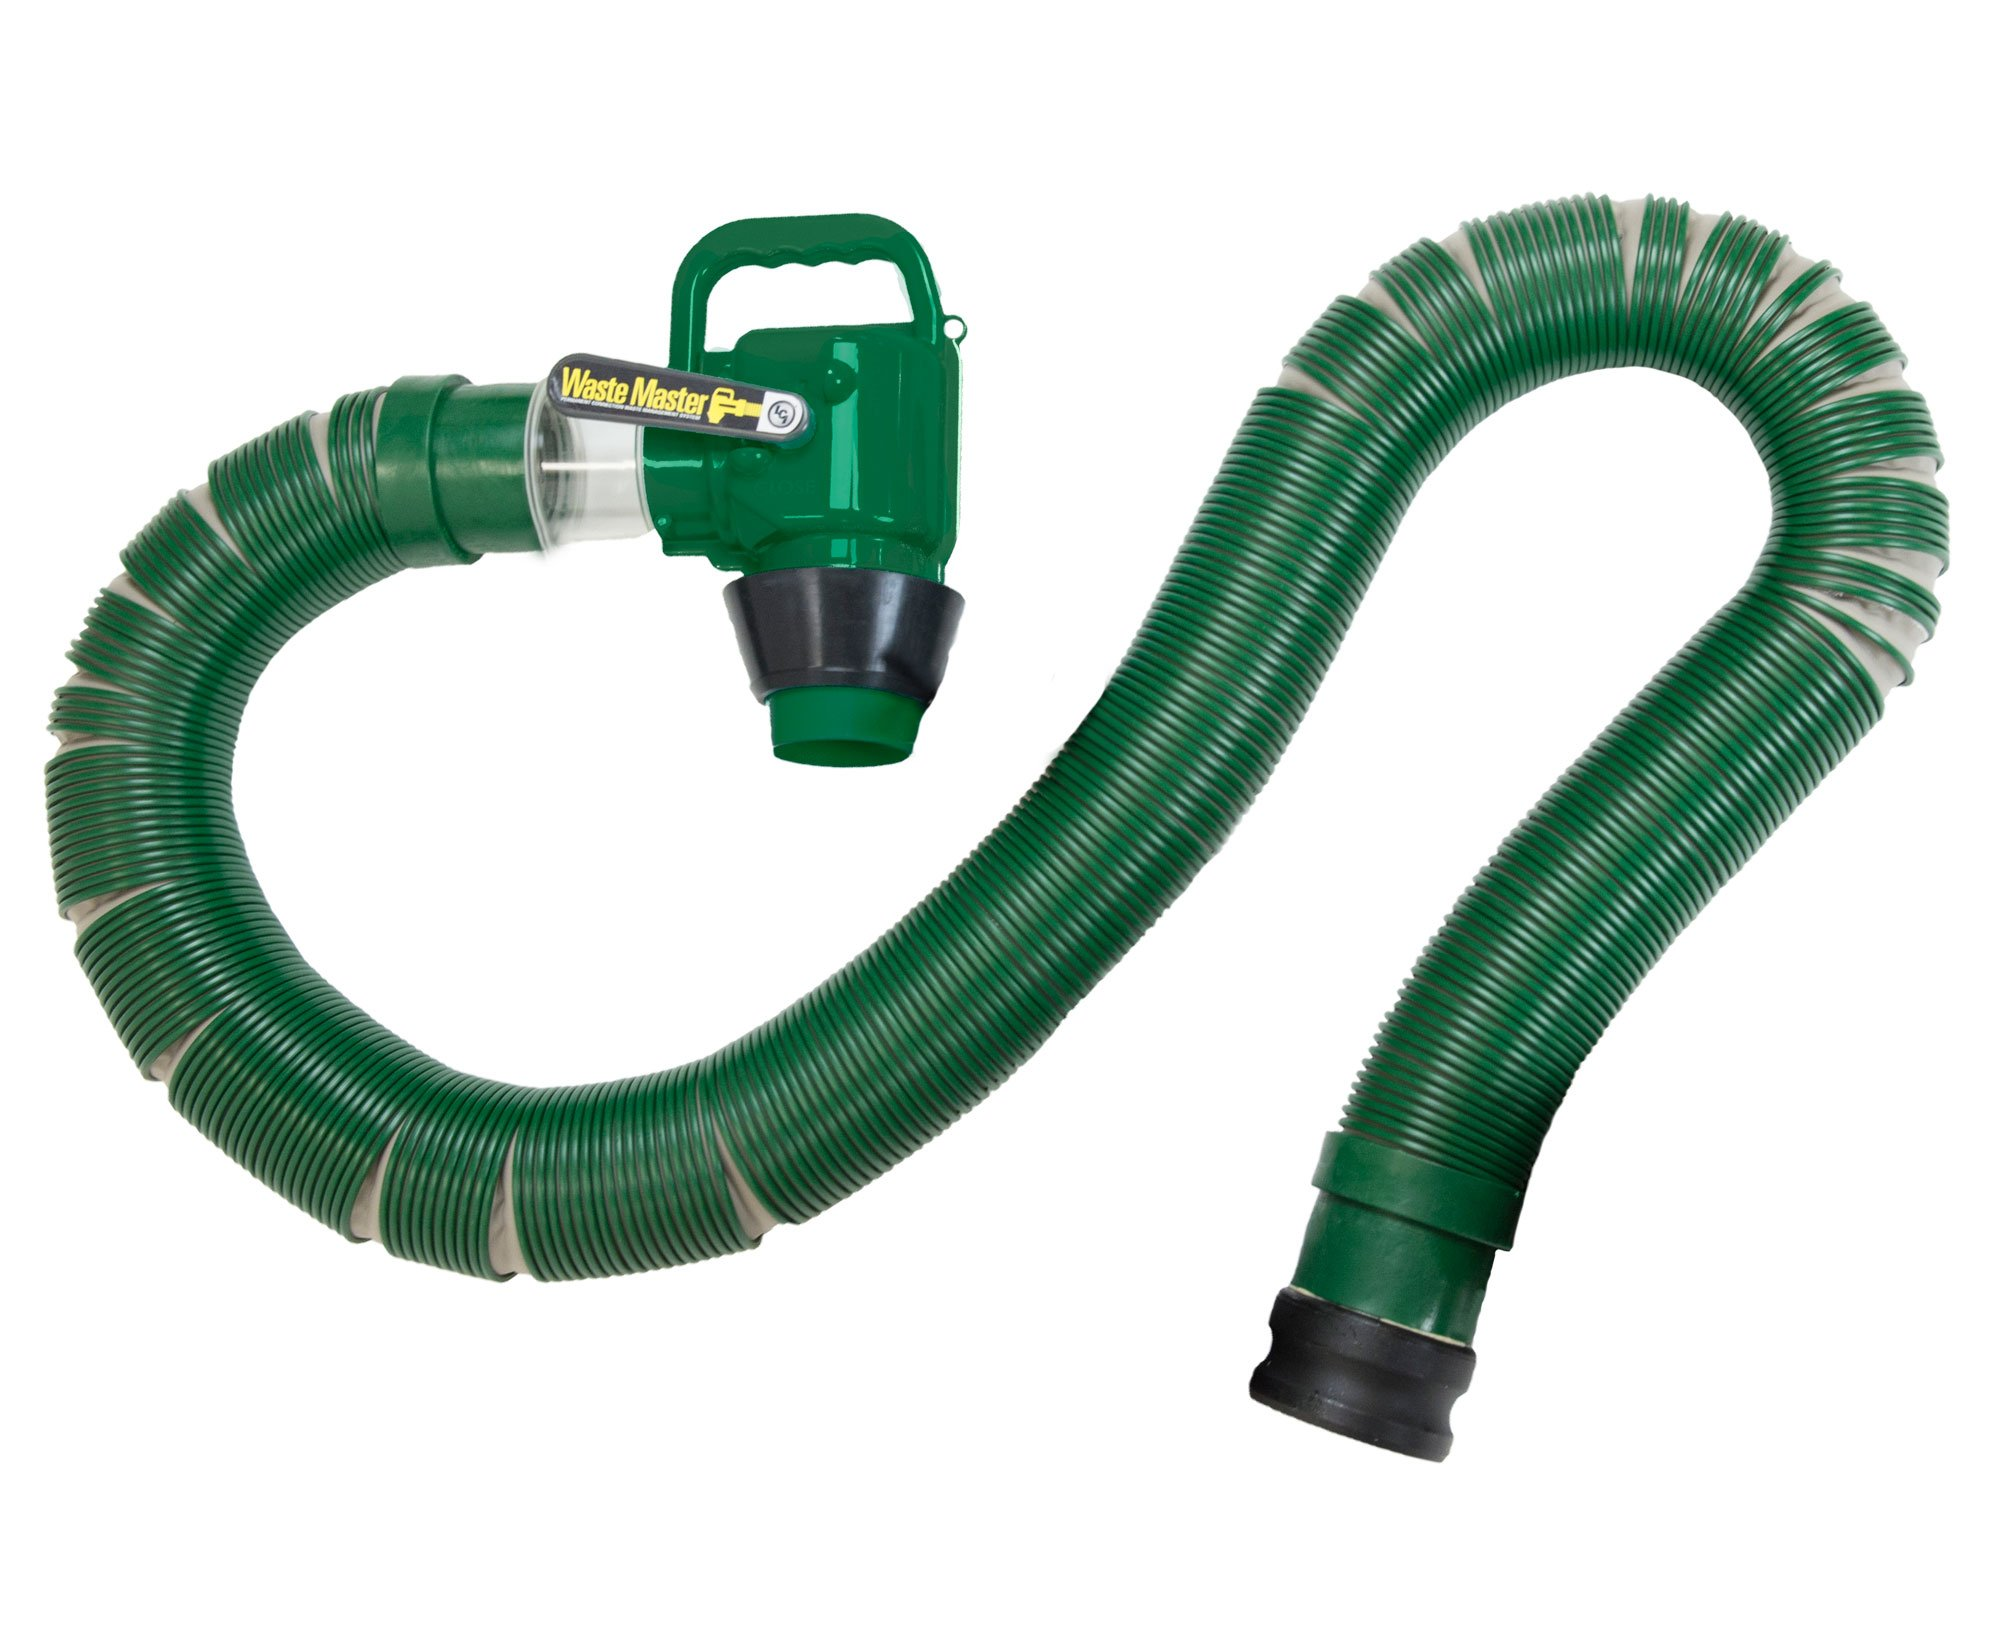 Lippert 359724 Waste Master 20' Extended RV Sewer Hose Management System by Lippert Components